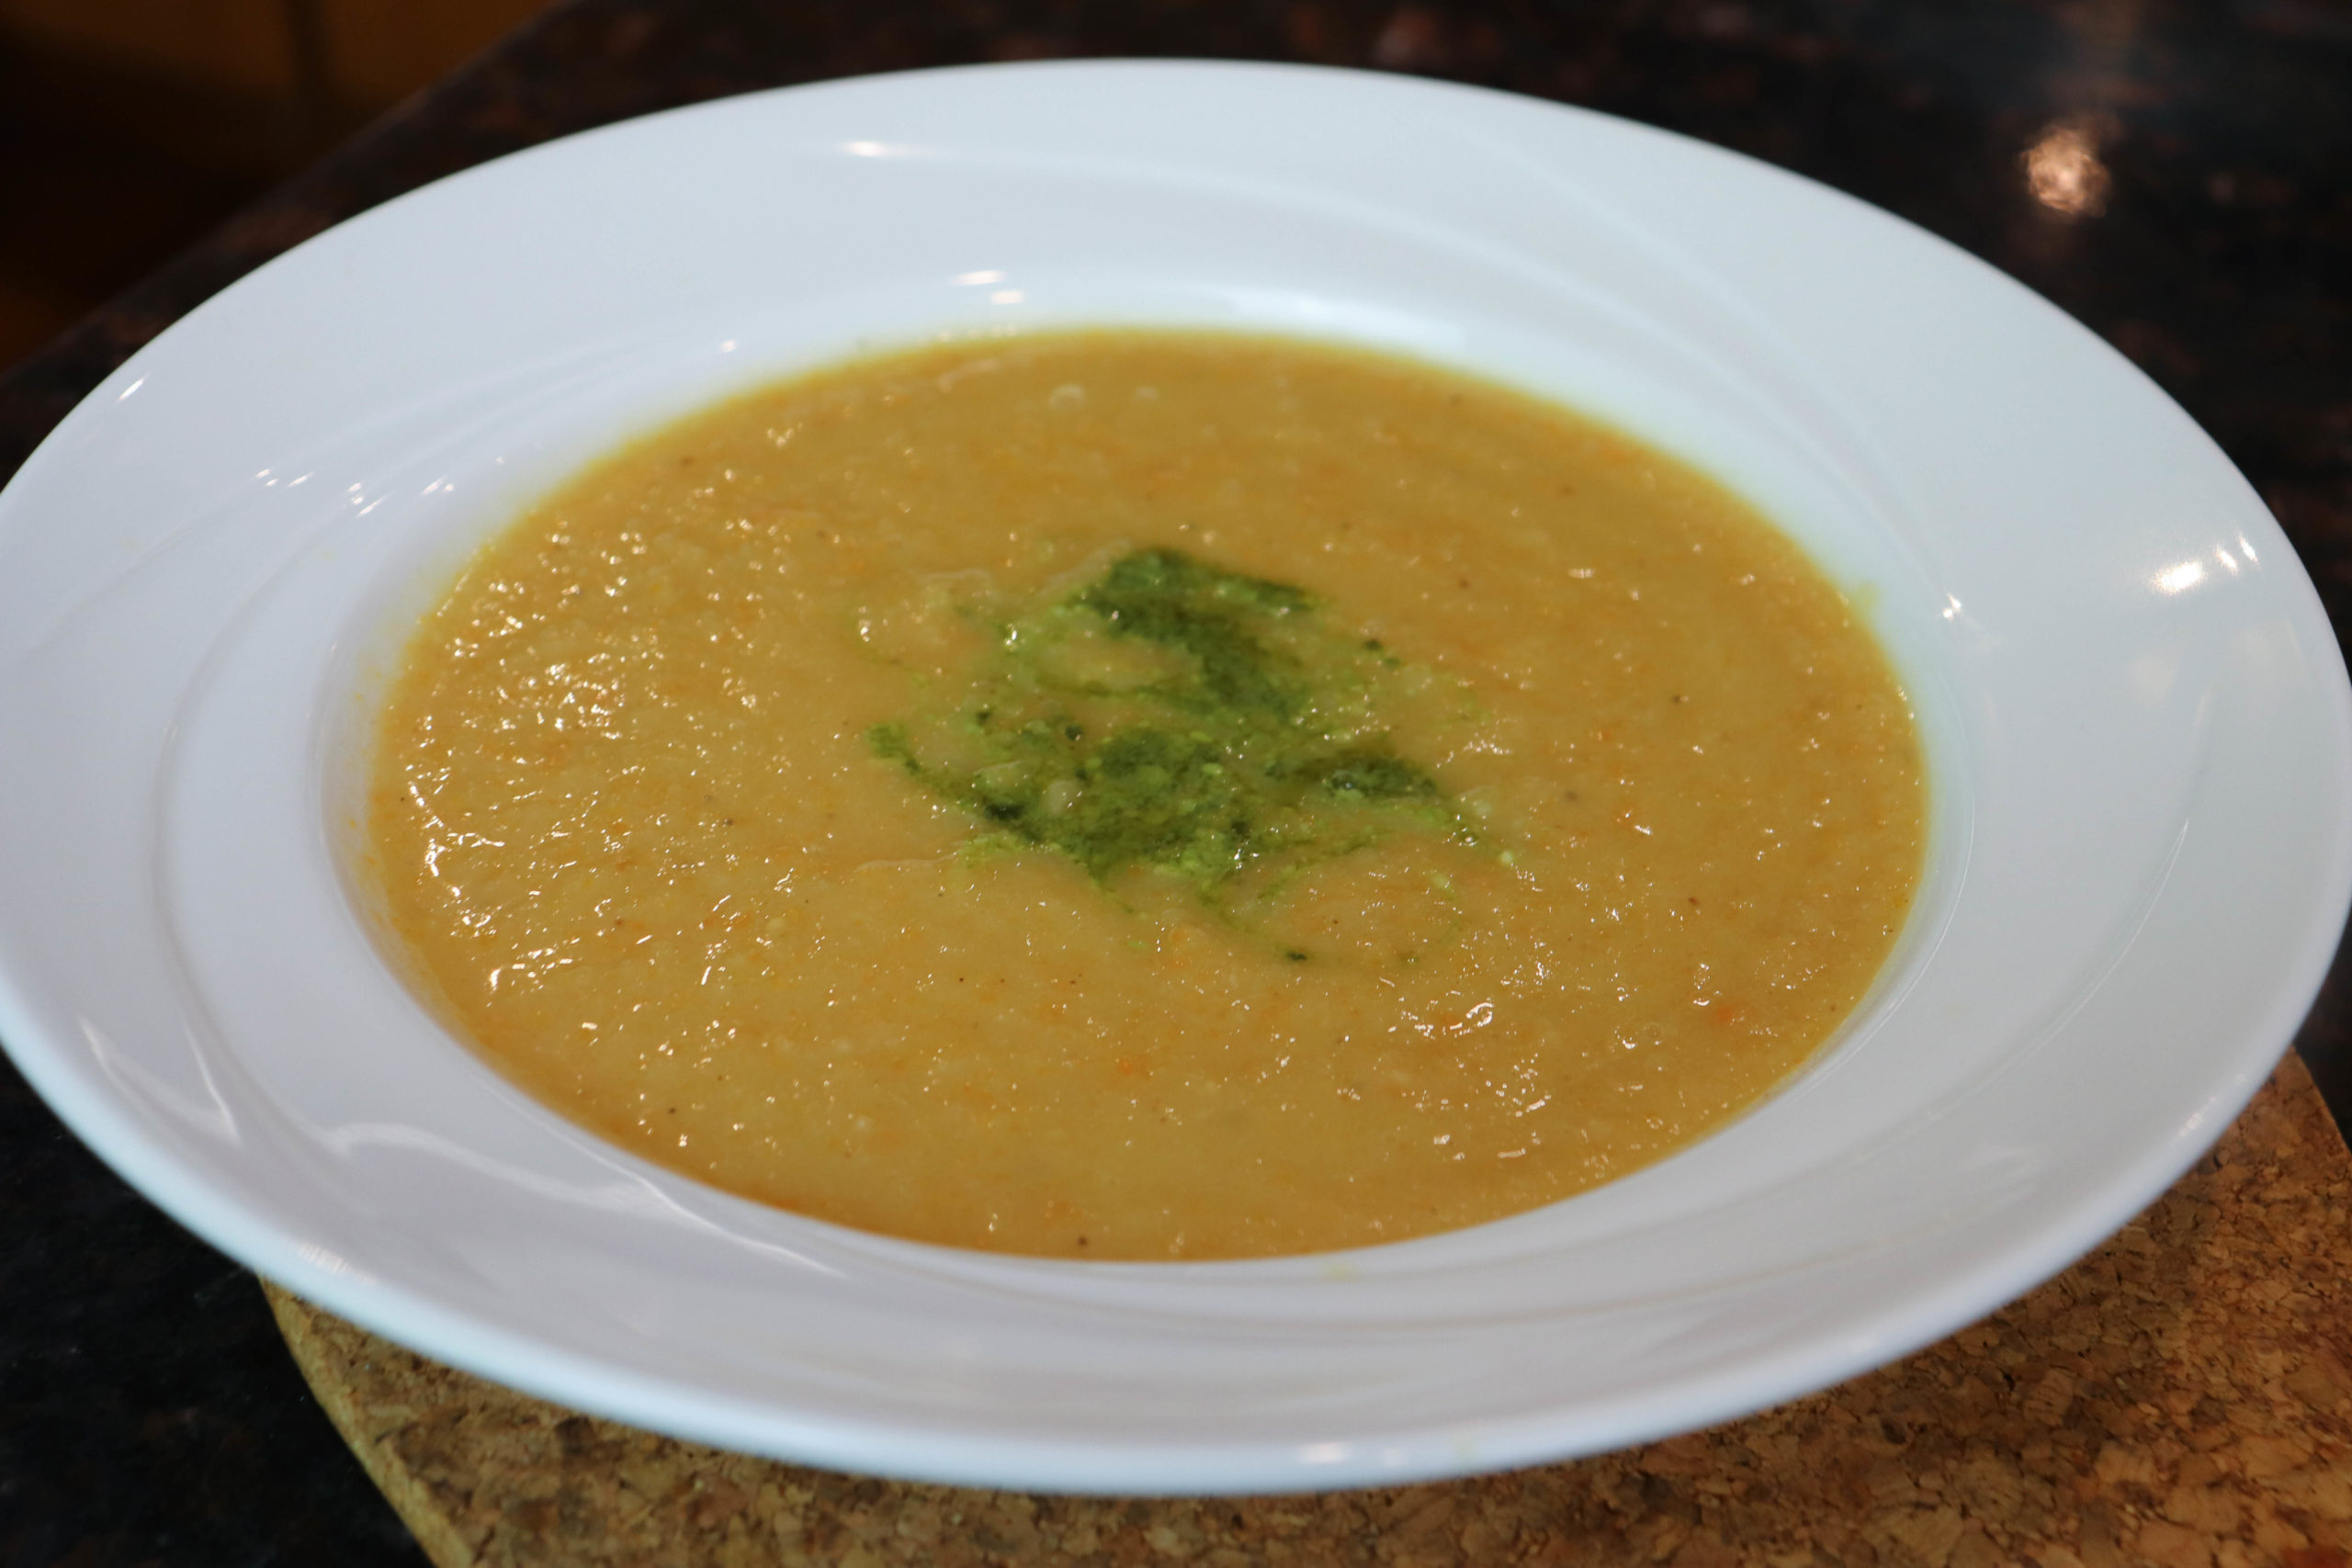 Roasted Parsnip carrot soup with pesto swirl